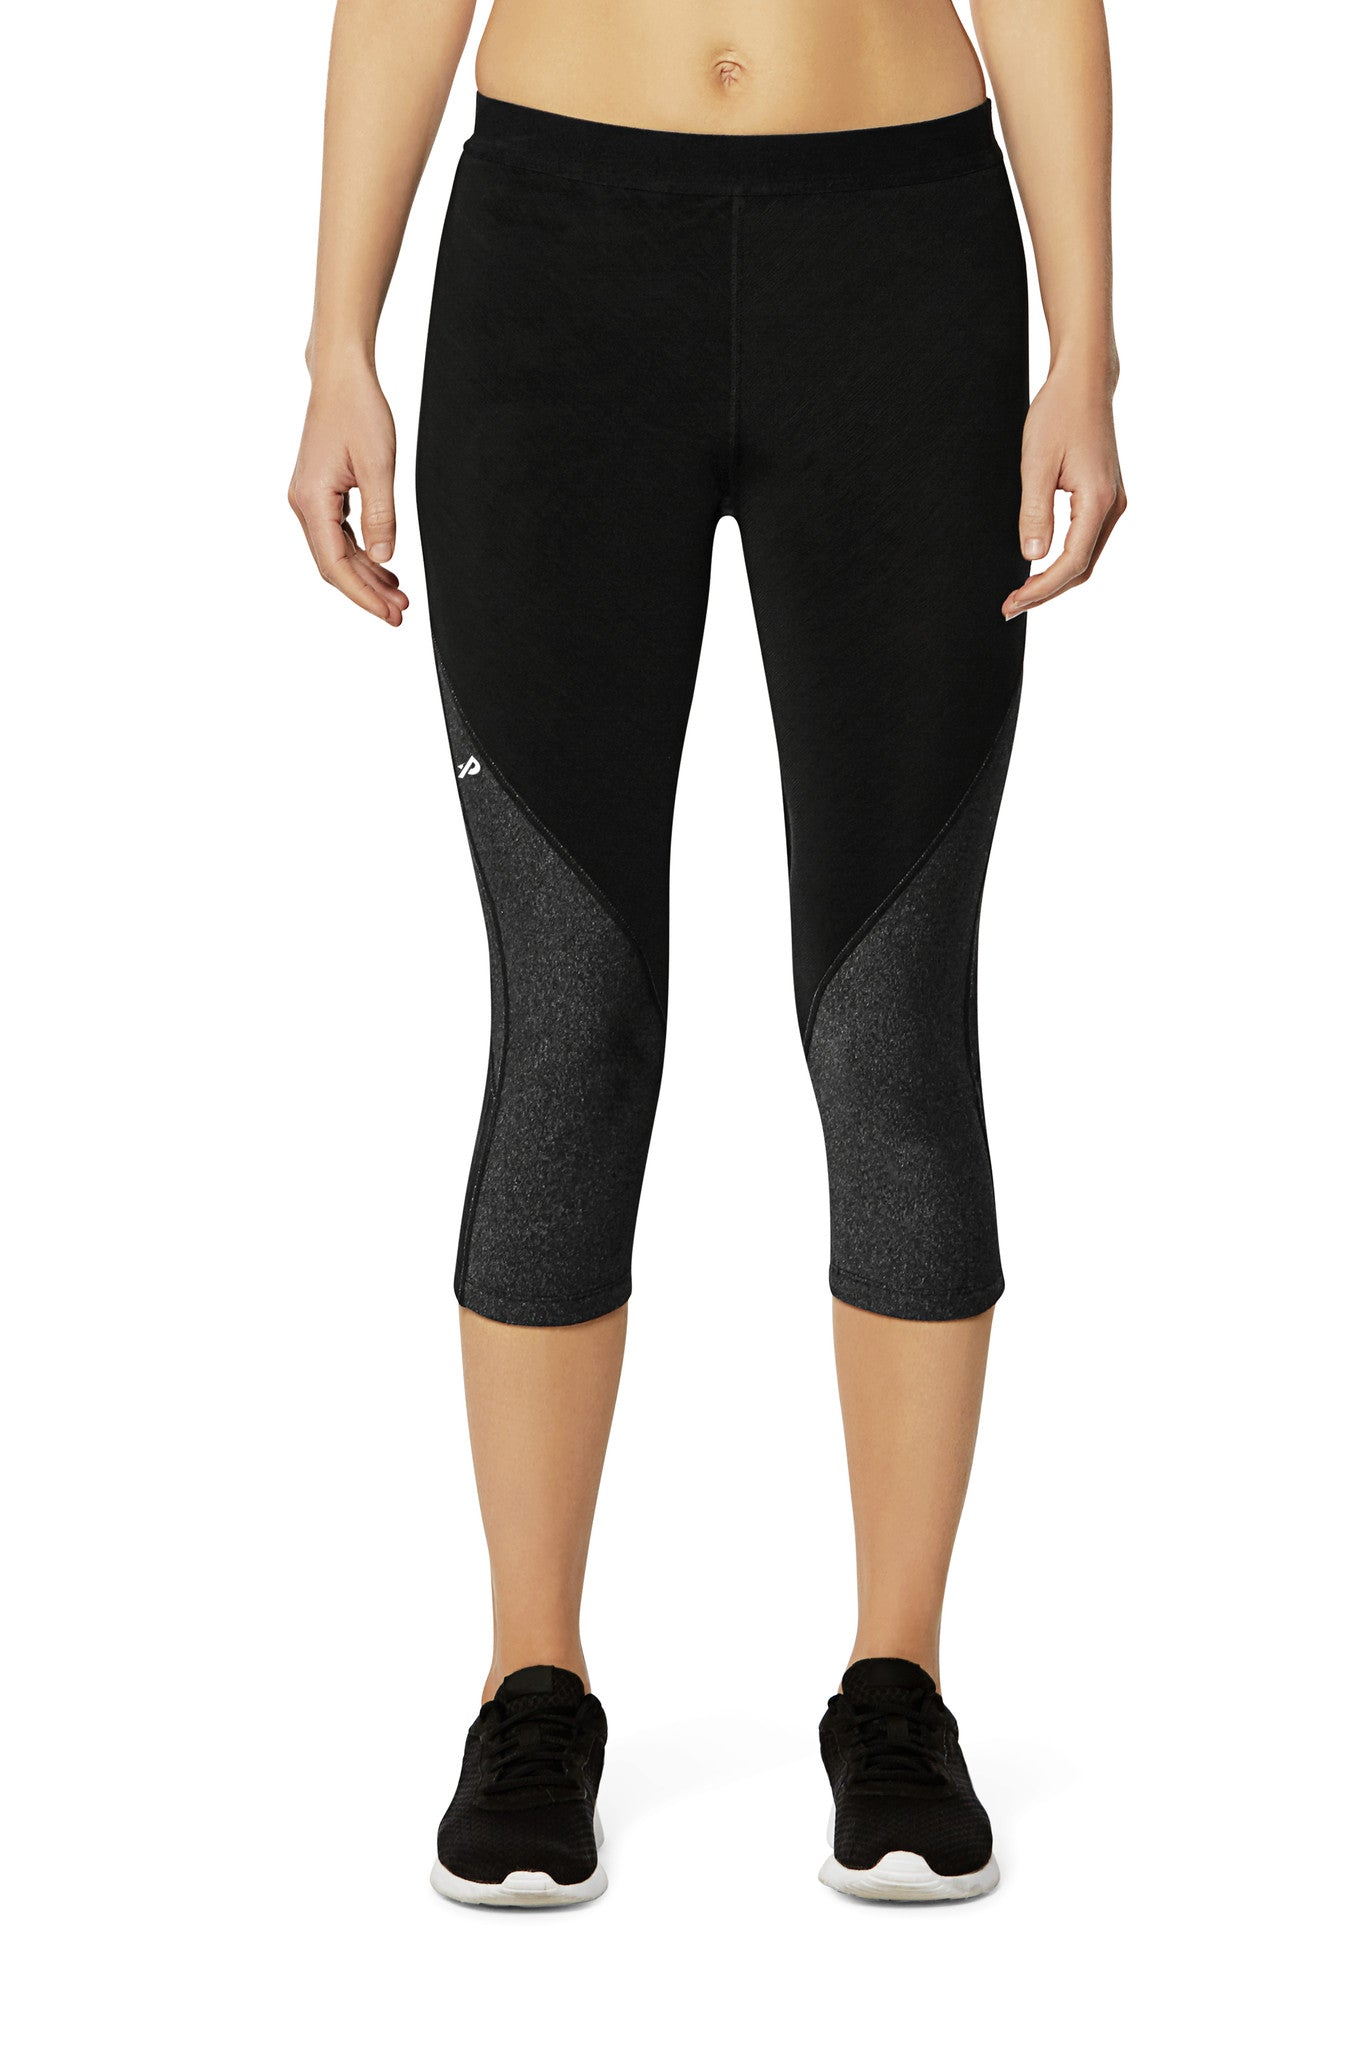 Pro Resistance Capris for Women - Athletic Grey